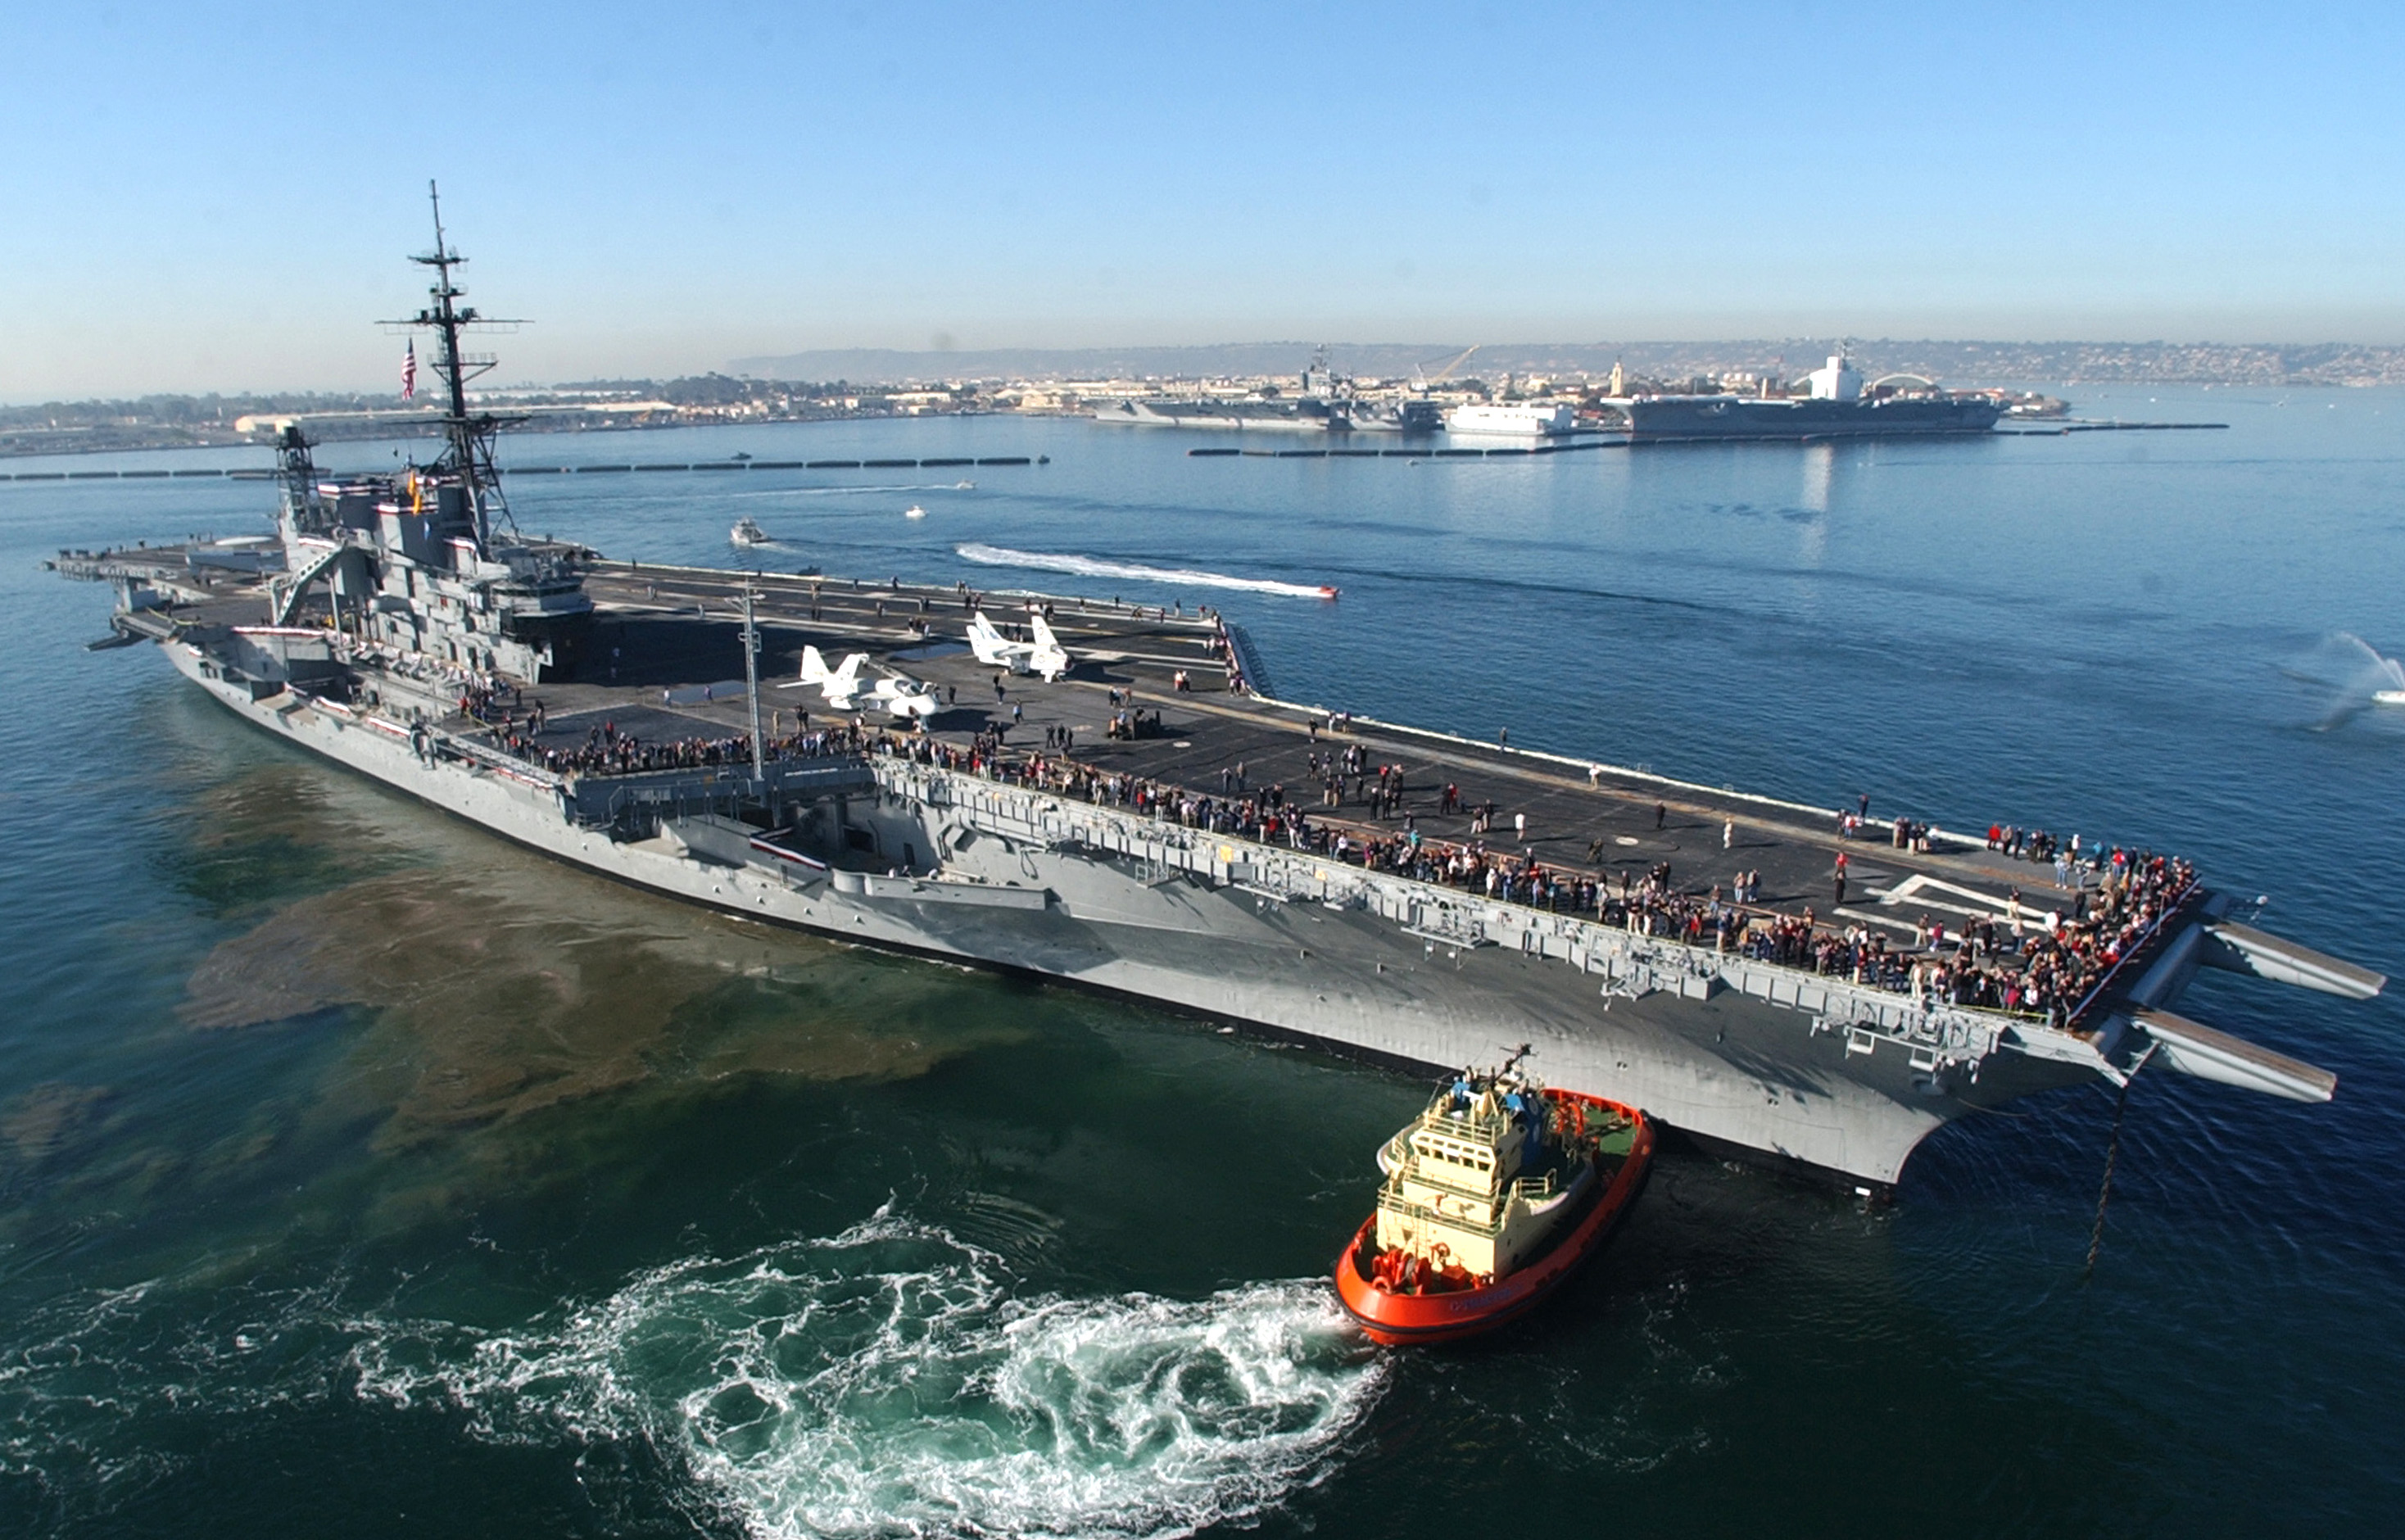 The biggest ships and airplanes